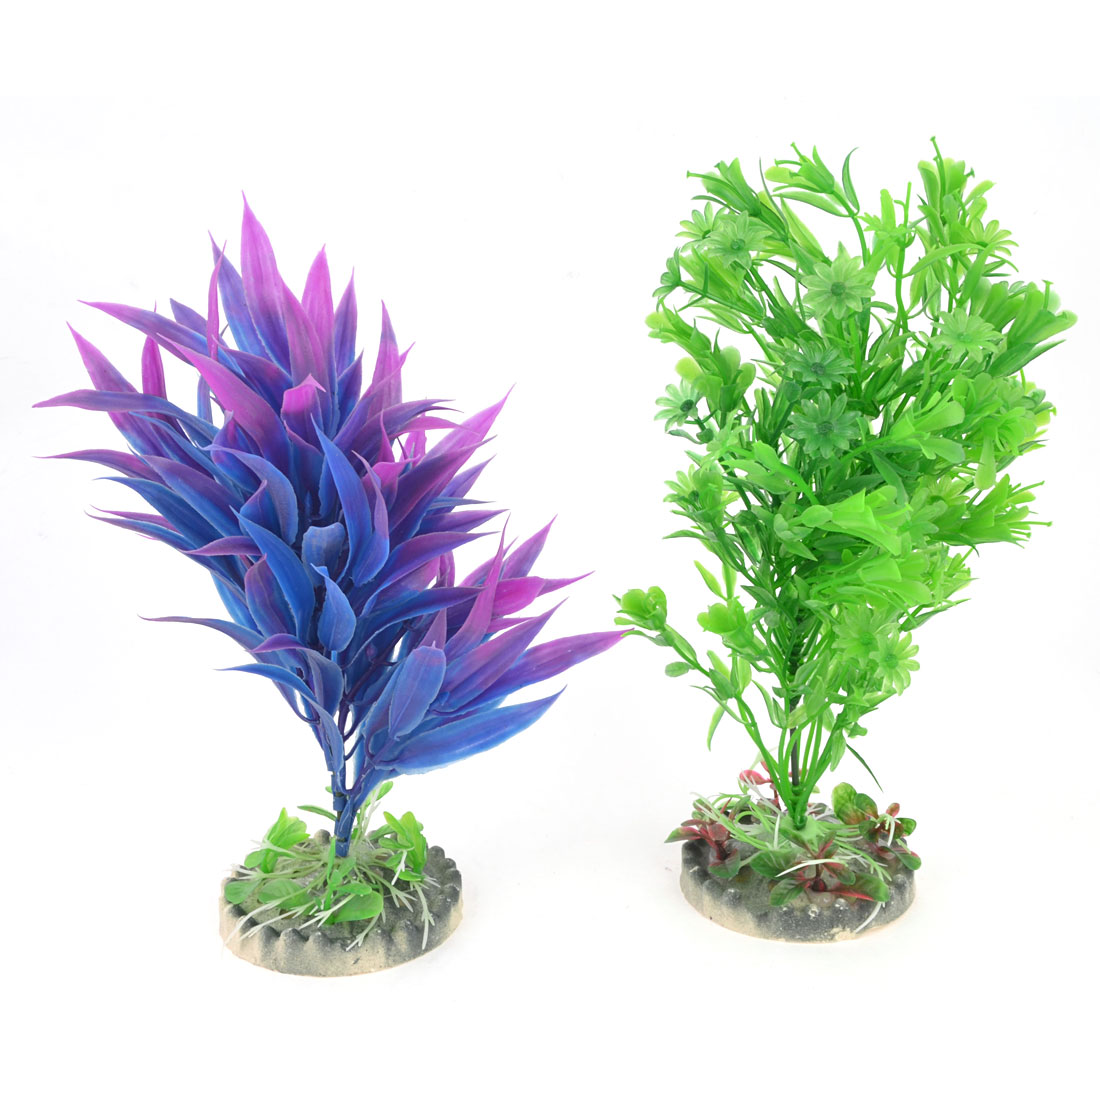 Fish Tank Fuchsia Blue Artificial Water Grass Ornament 23cm 22cm Height 2 PCS